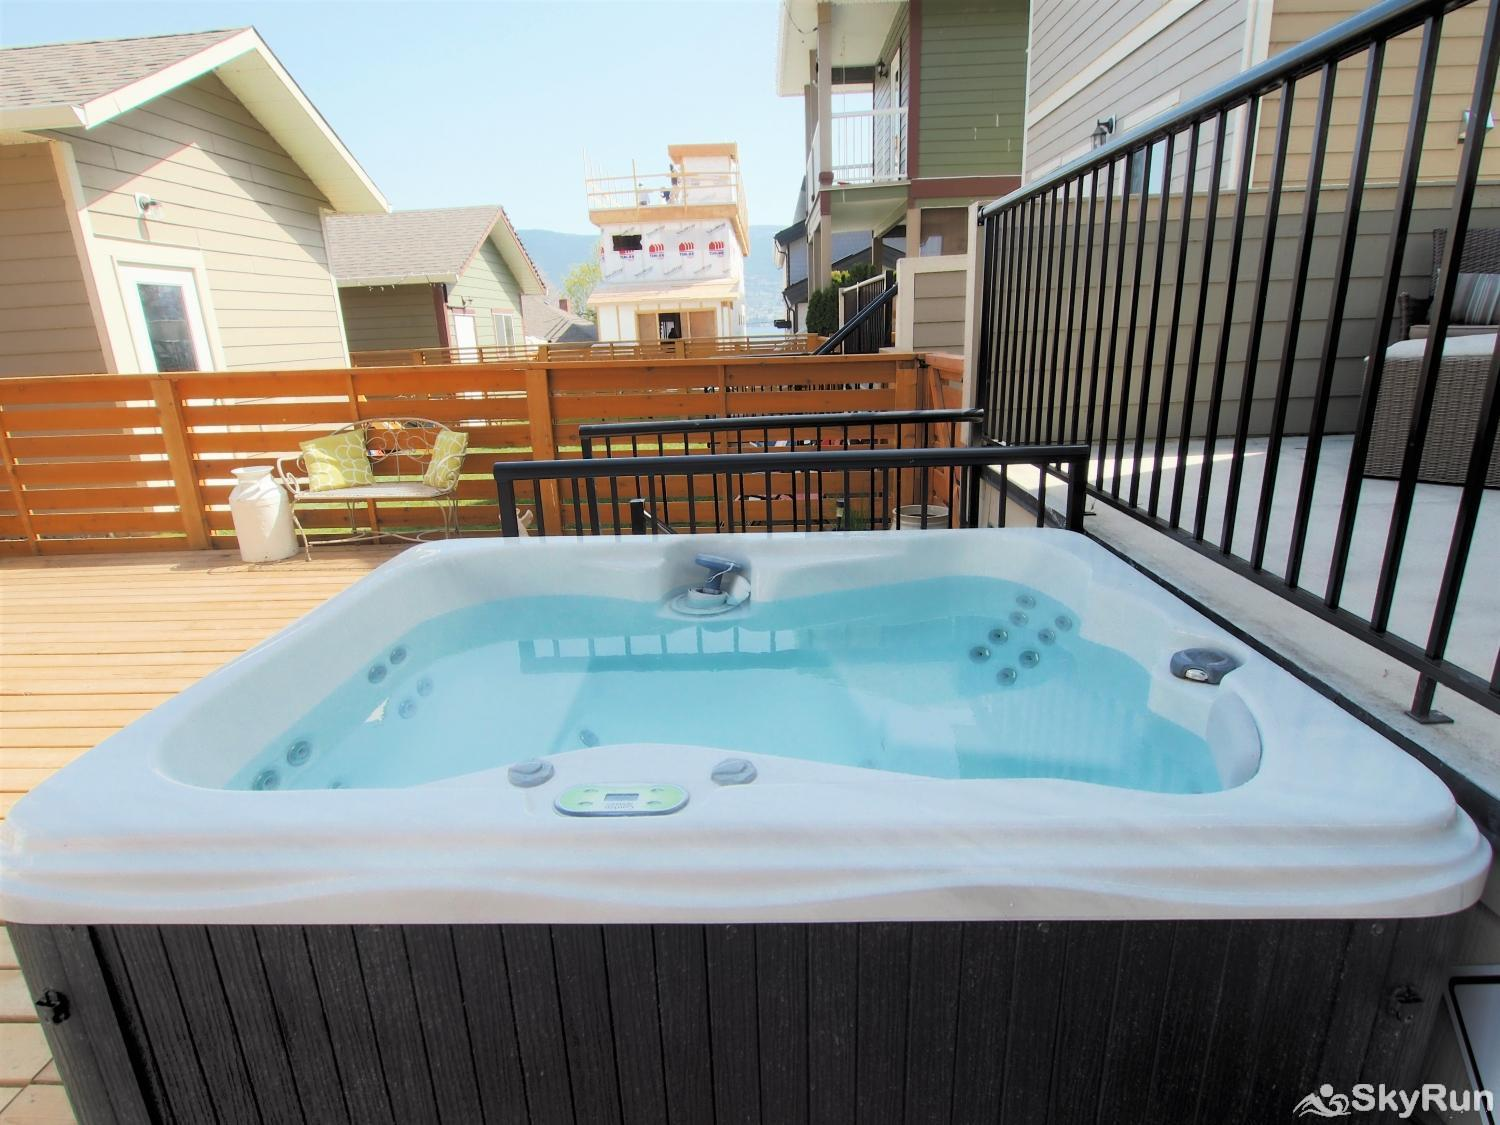 Old Summerland 4 bedroom townhouse Hot tub in the back yard